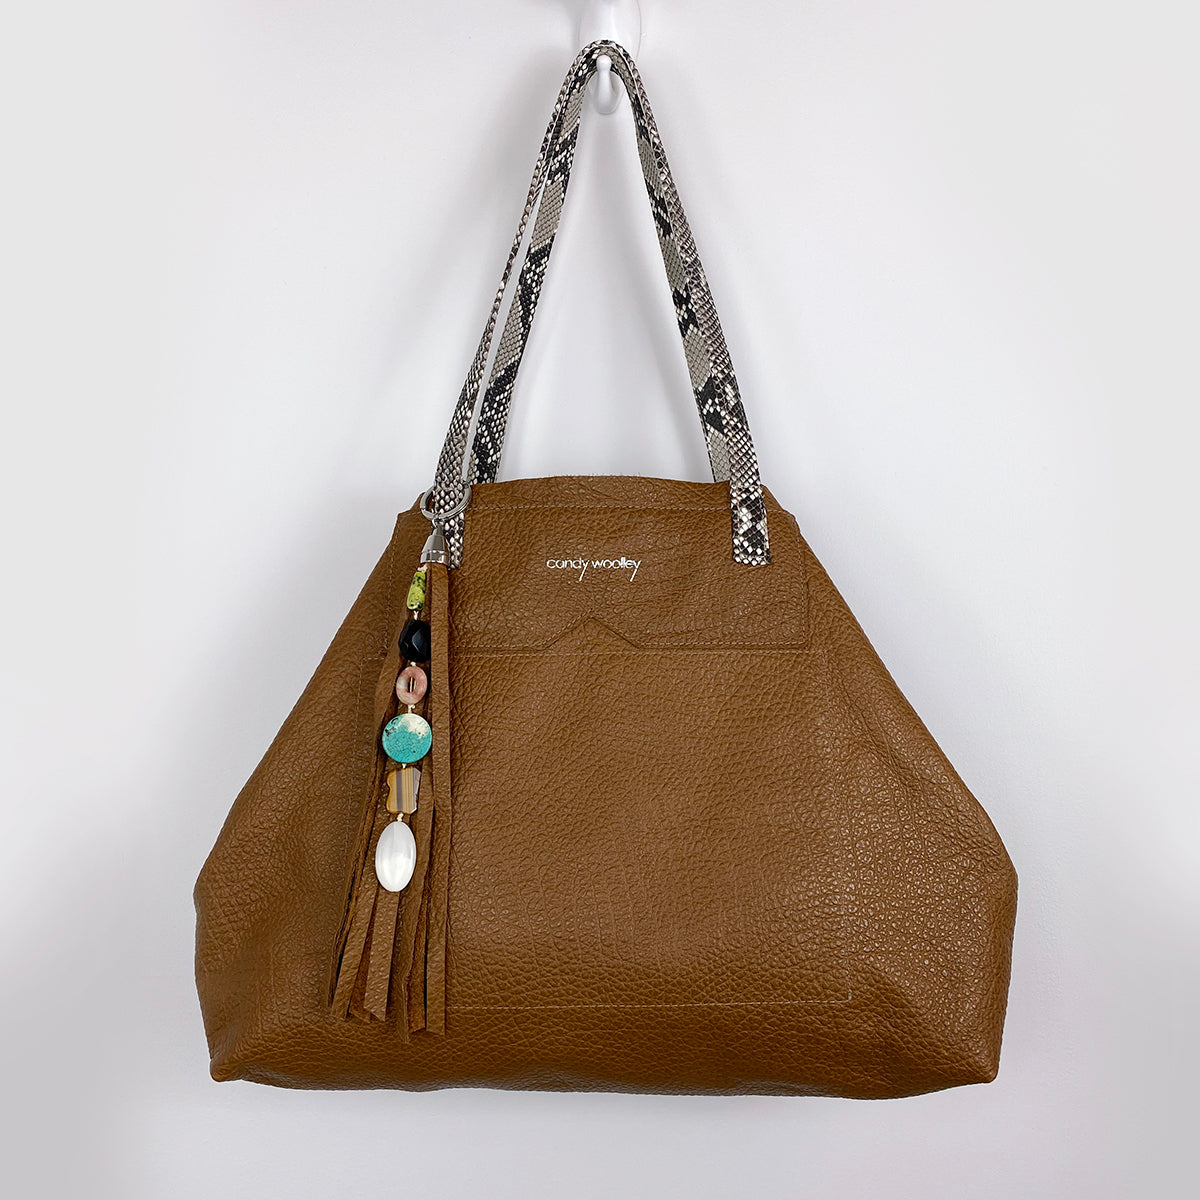 BRUNY CAMEL GENUINE LEATHER TOTE, SNAKESKIN, STONE TASSEL